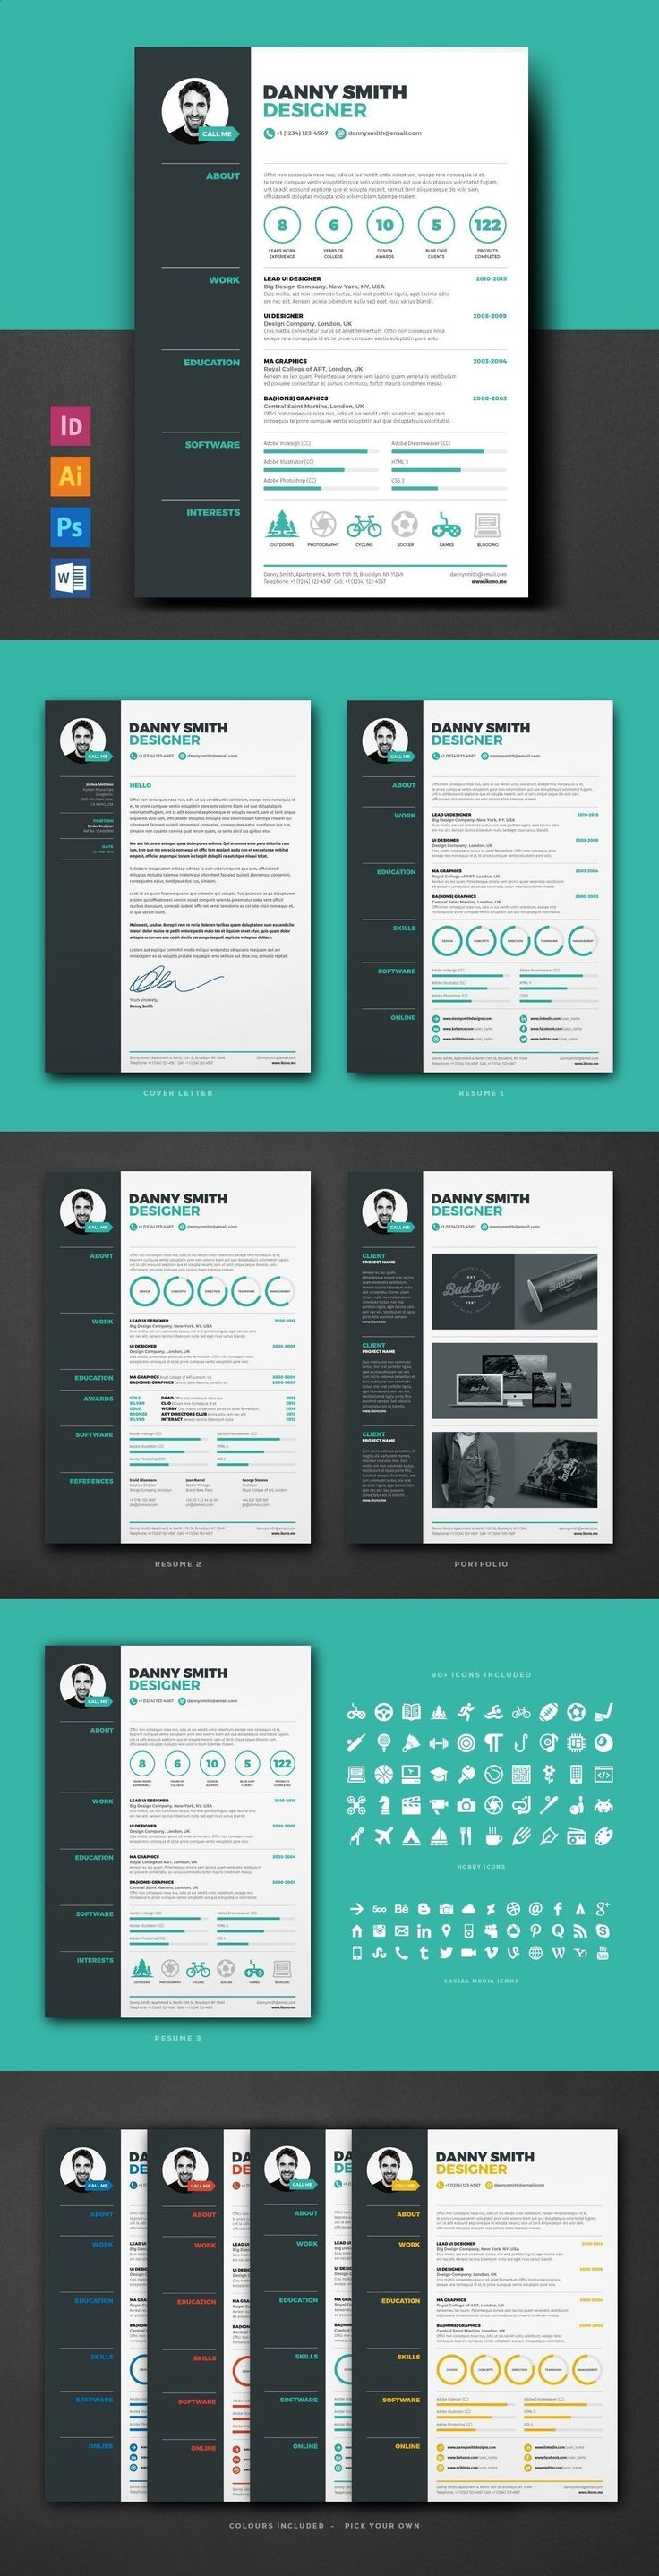 5082 best RESUME | CV | LEBENSLAUF images on Pinterest | Design ...